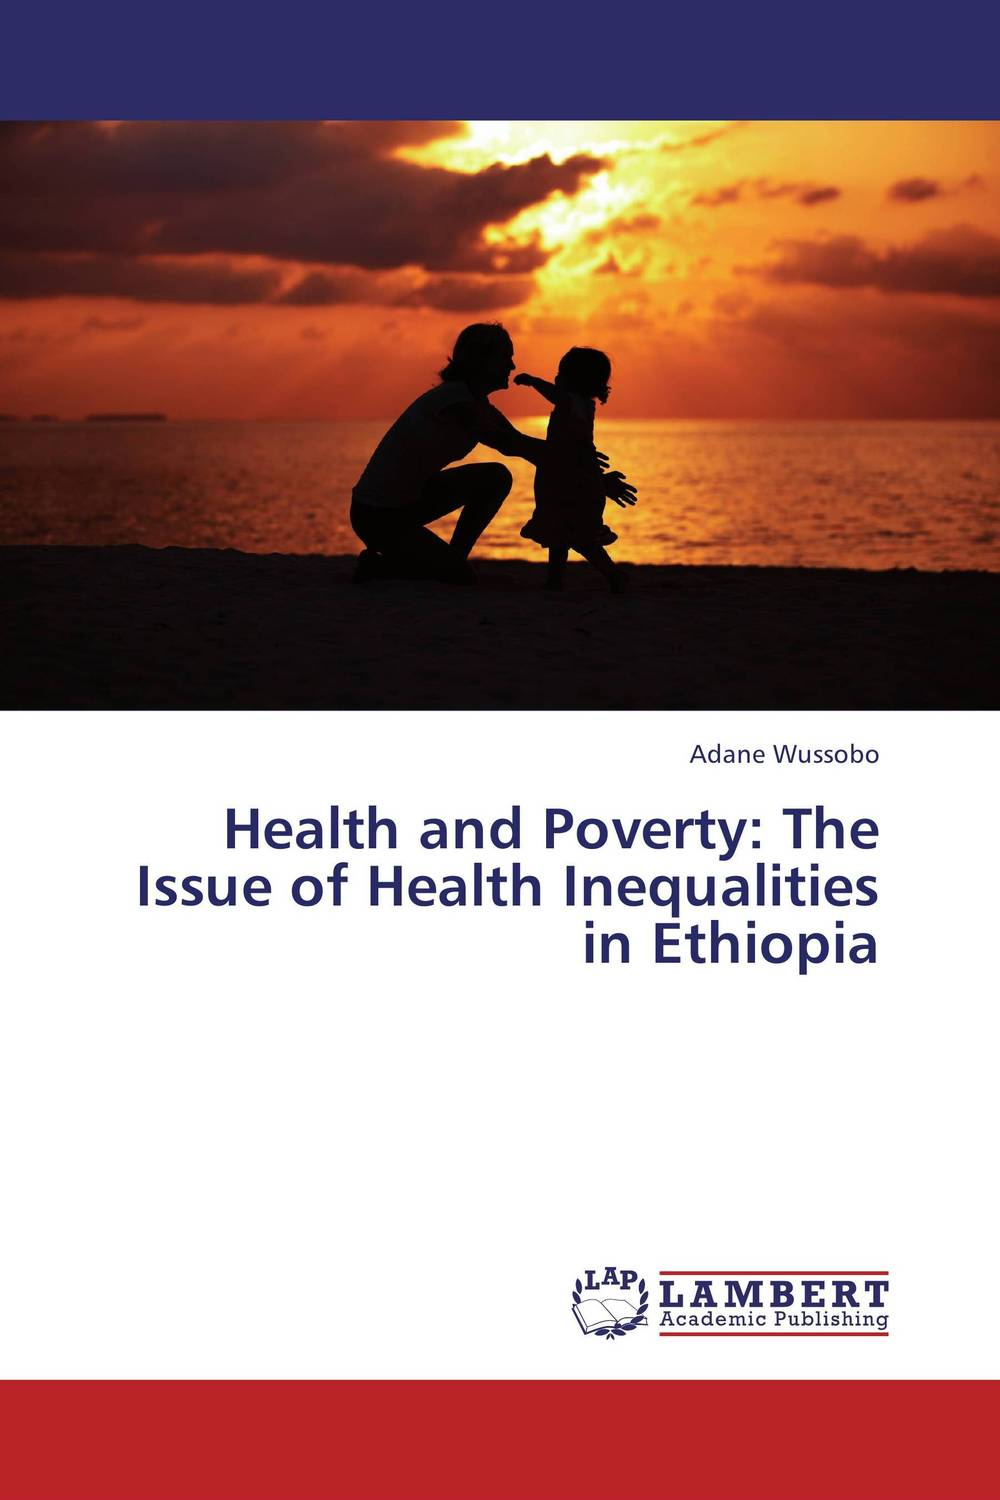 Health and Poverty: The Issue of Health Inequalities in Ethiopia prostate health devices is prostate removal prostatitis mainly for the prostate health and prostatitis health capsule